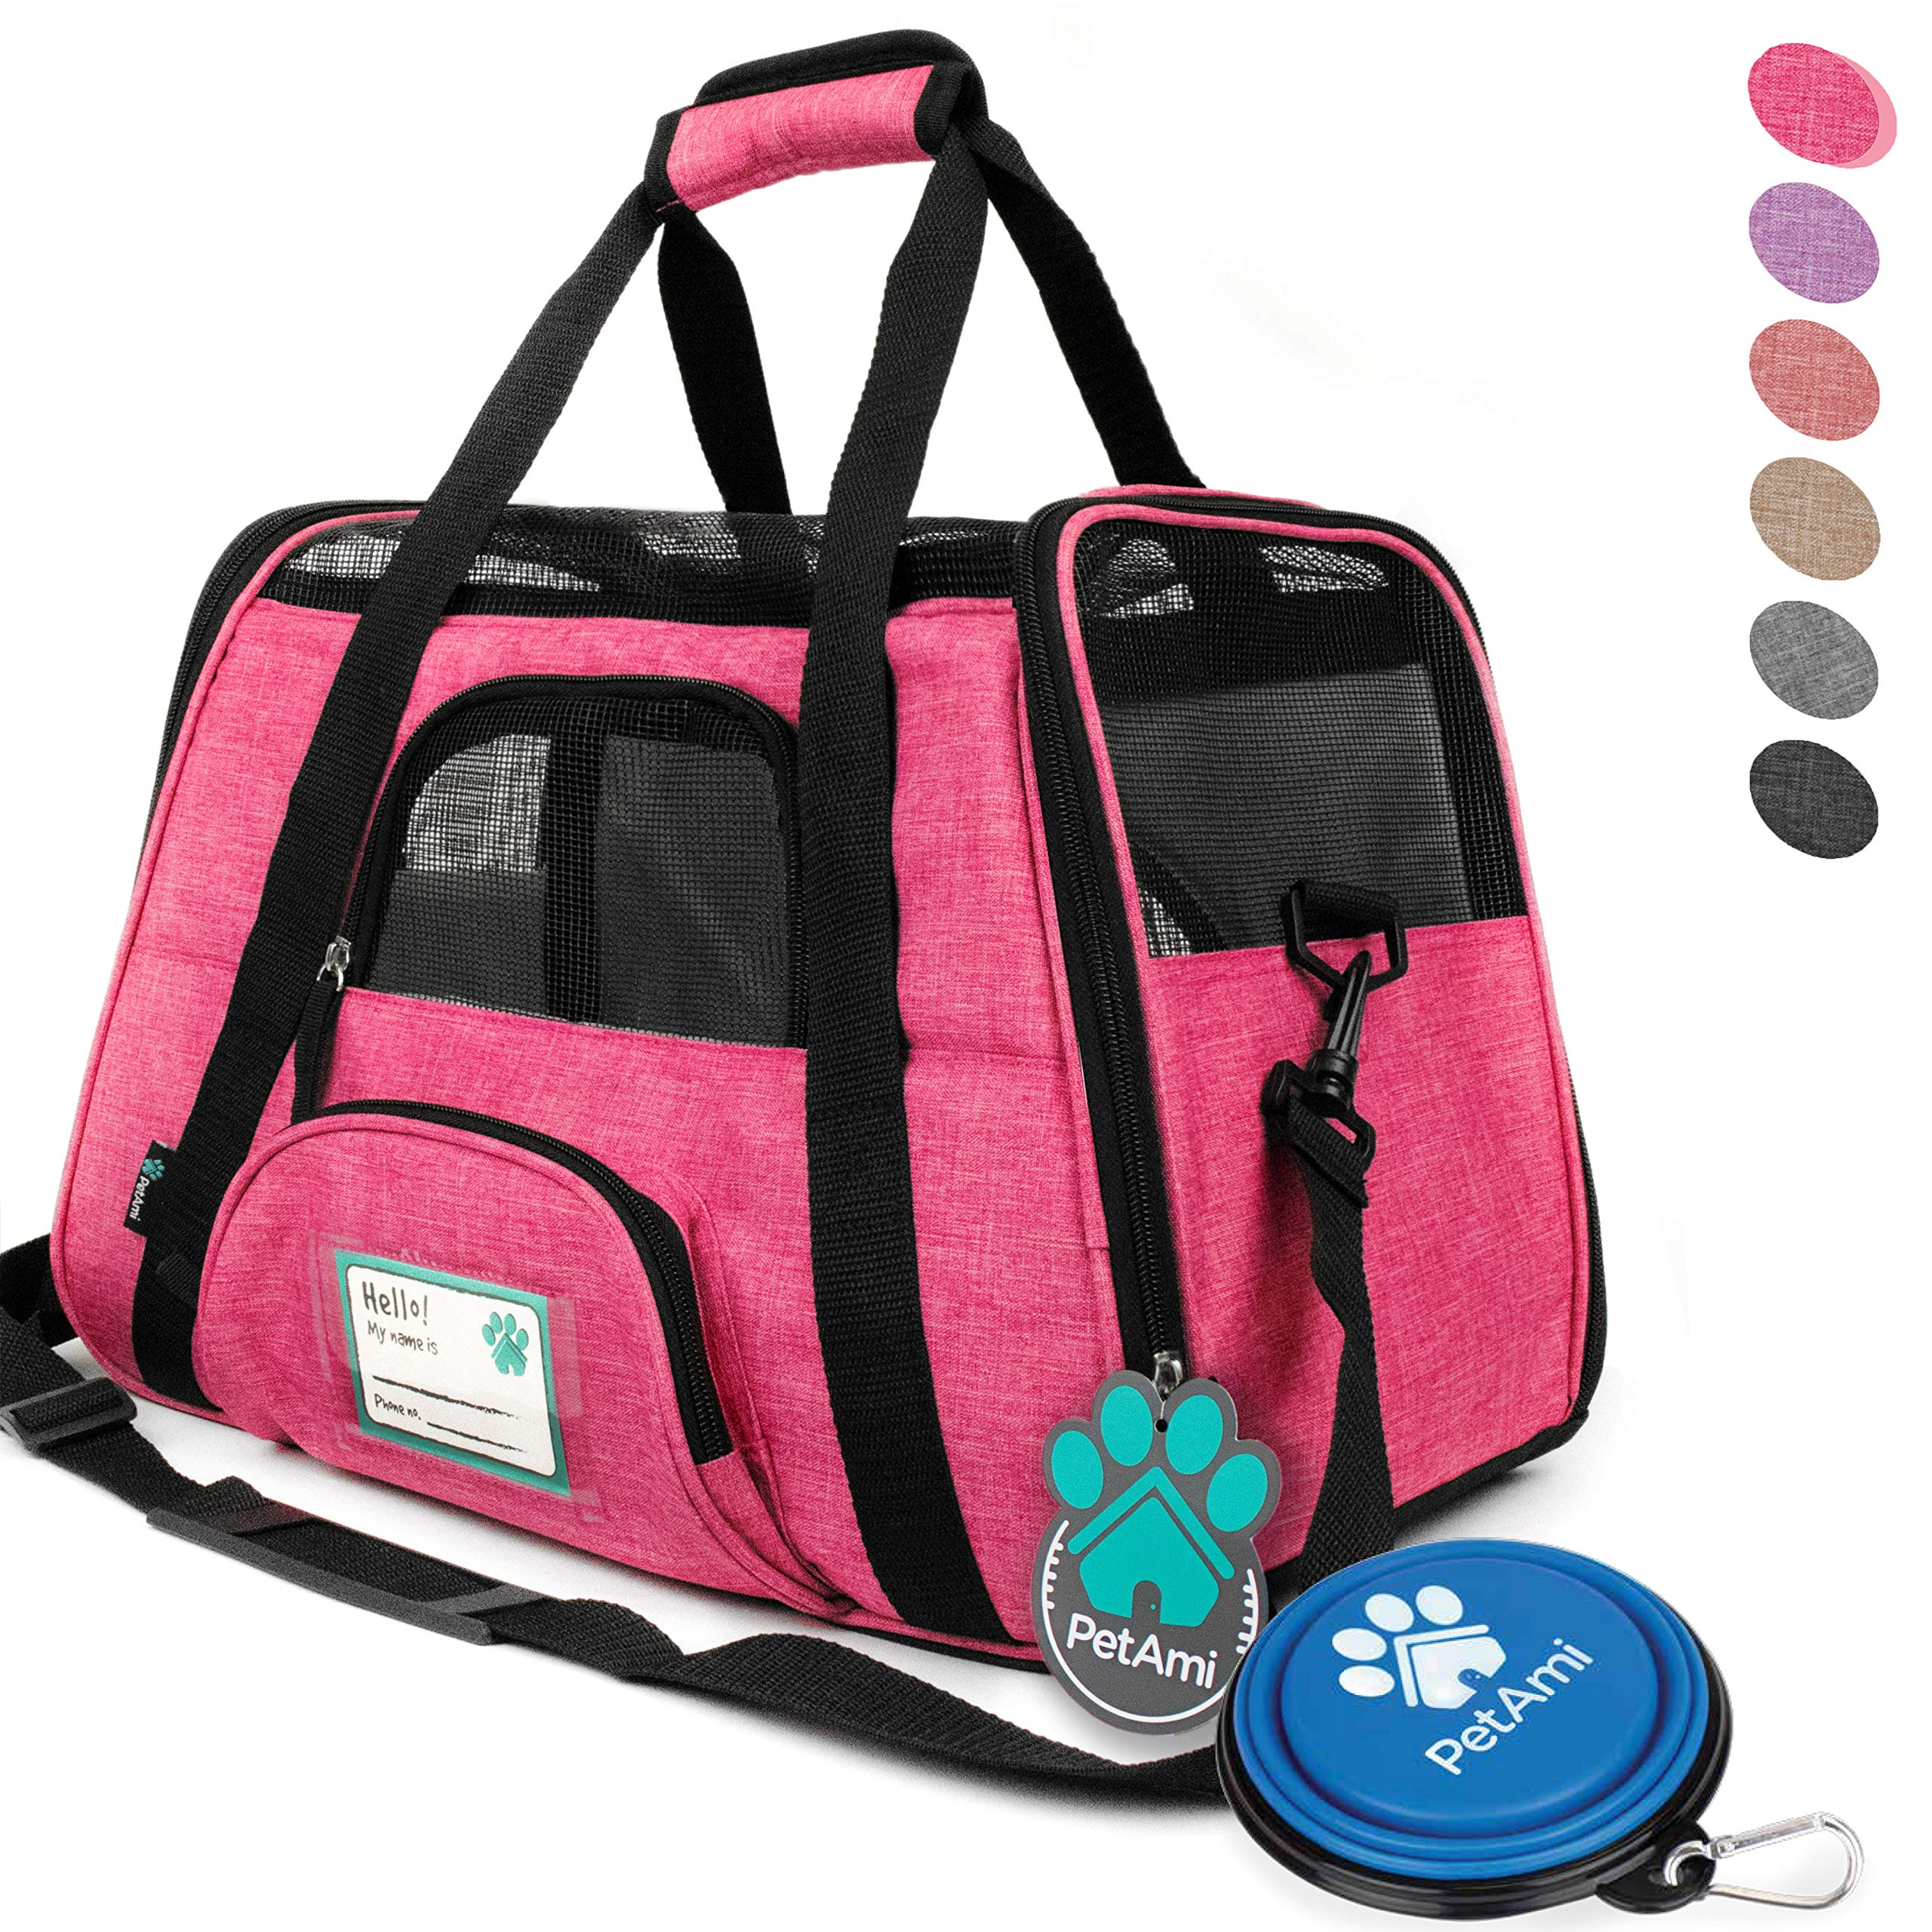 PetAmi Premium Airline Approved Soft-Sided Pet Travel Carrier | Ventilated, Comfortable Design with Safety Features | Ideal for Small to Medium Sized Cats, Dogs, and Pets (Small, Heather Pink) by PetAmi